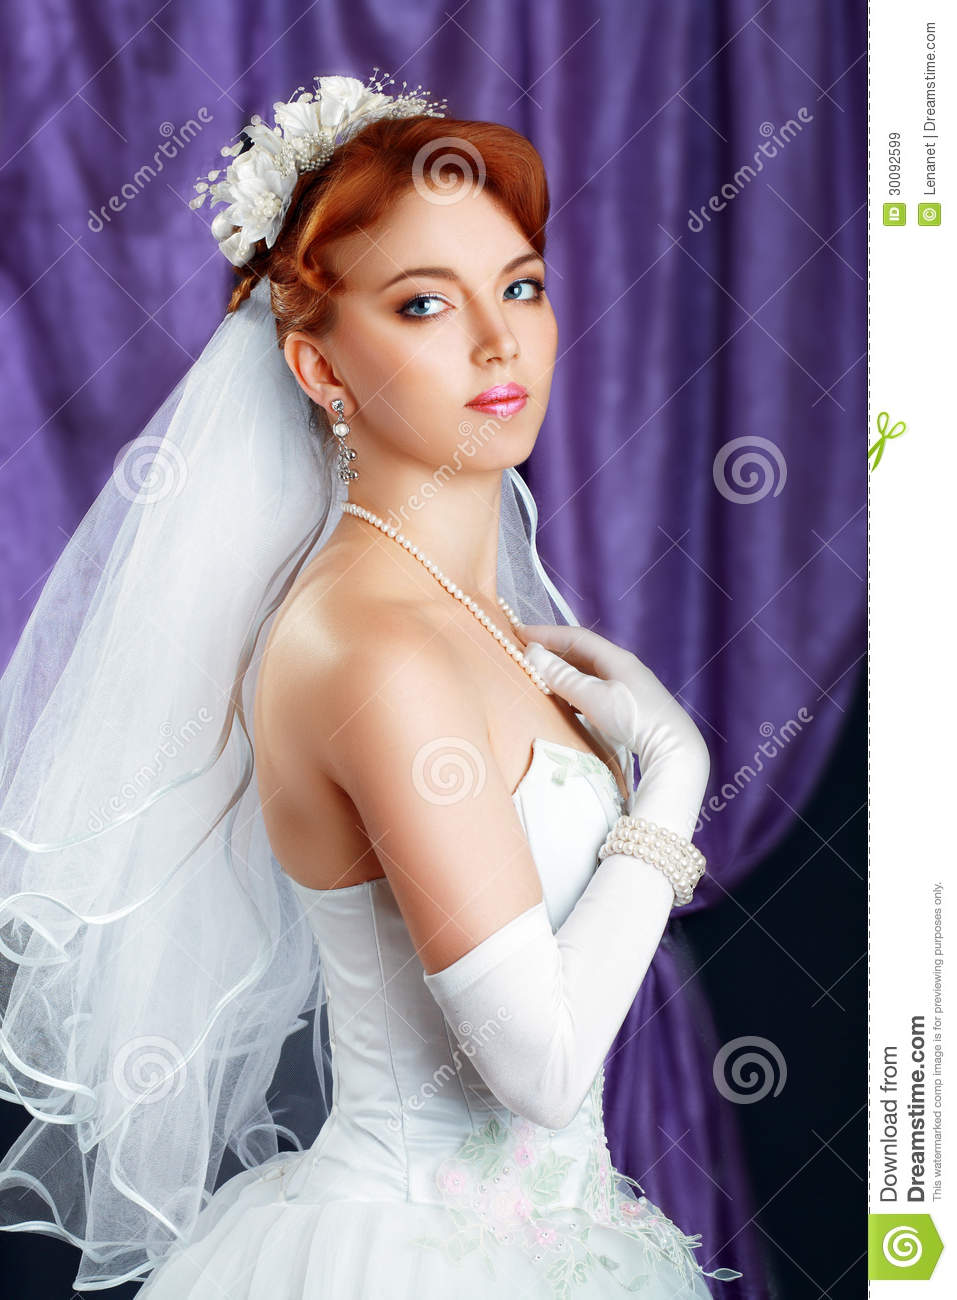 Bride Red Haired Stock Image Image Of Face Person Ceremony